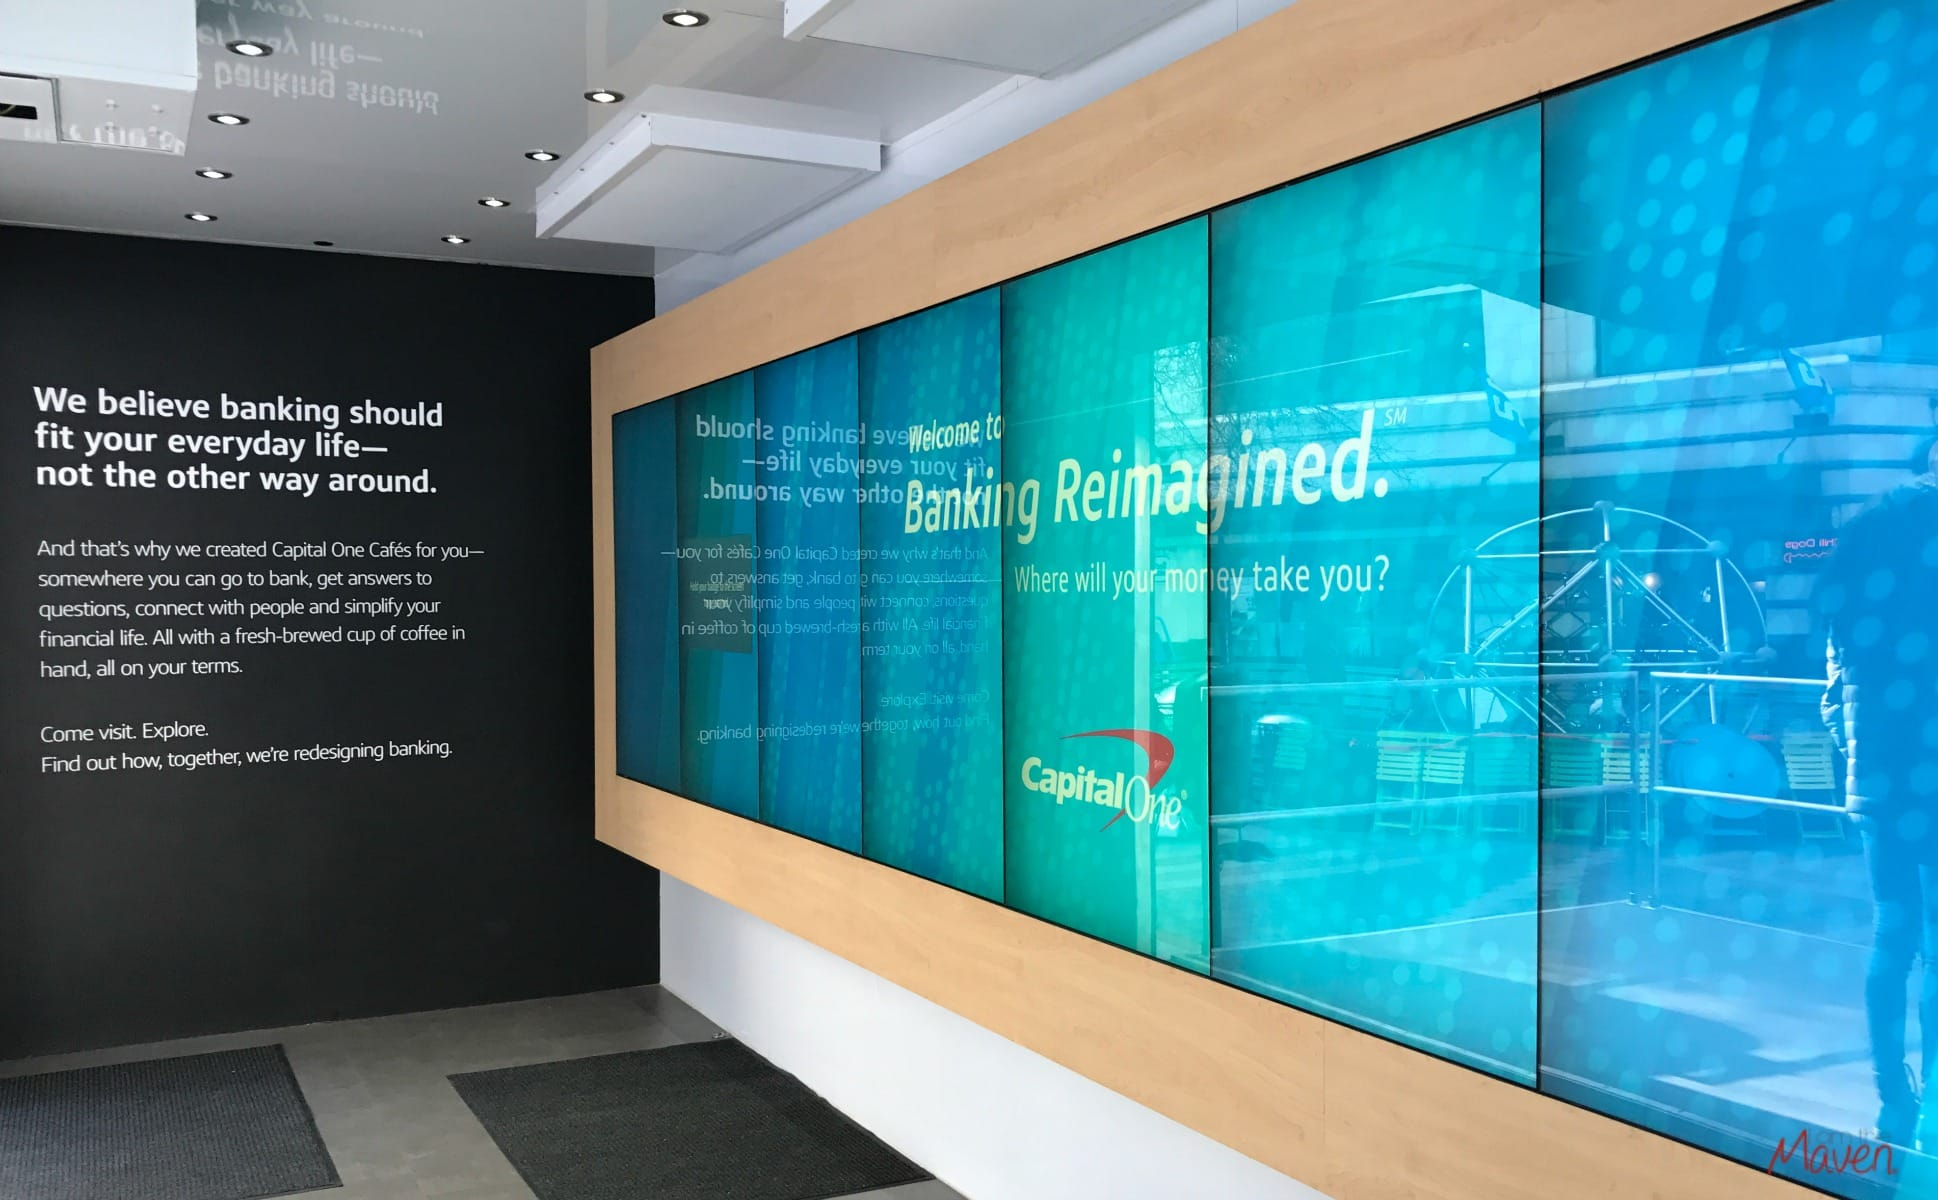 Capital One Banking Reimagined Tour Seattle